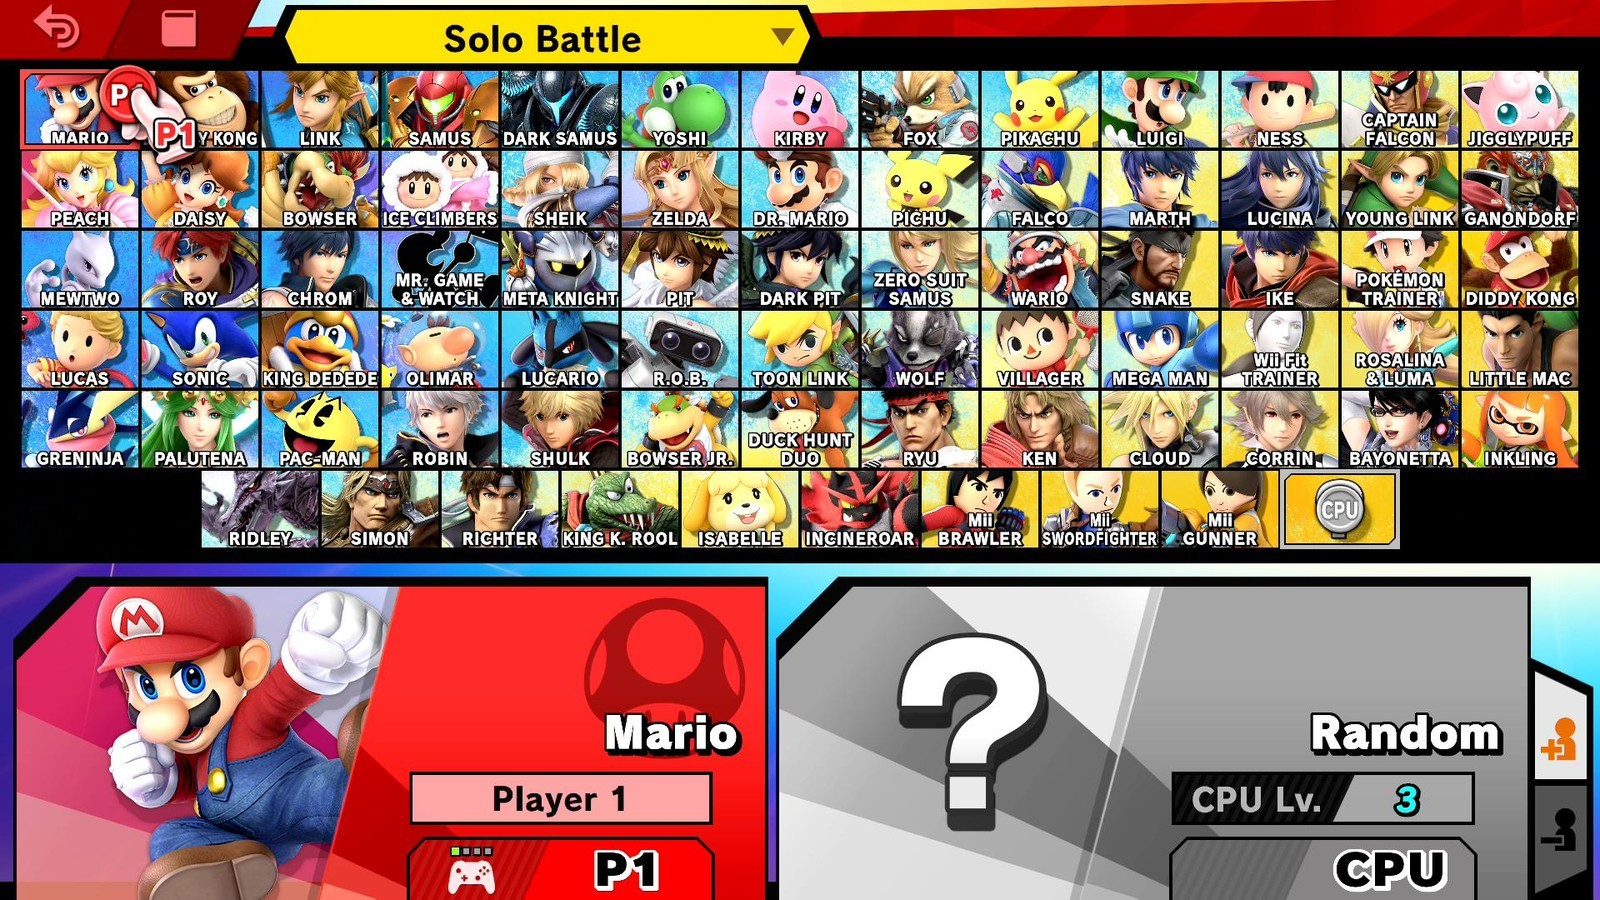 The full Smash Bros Ultimate roster